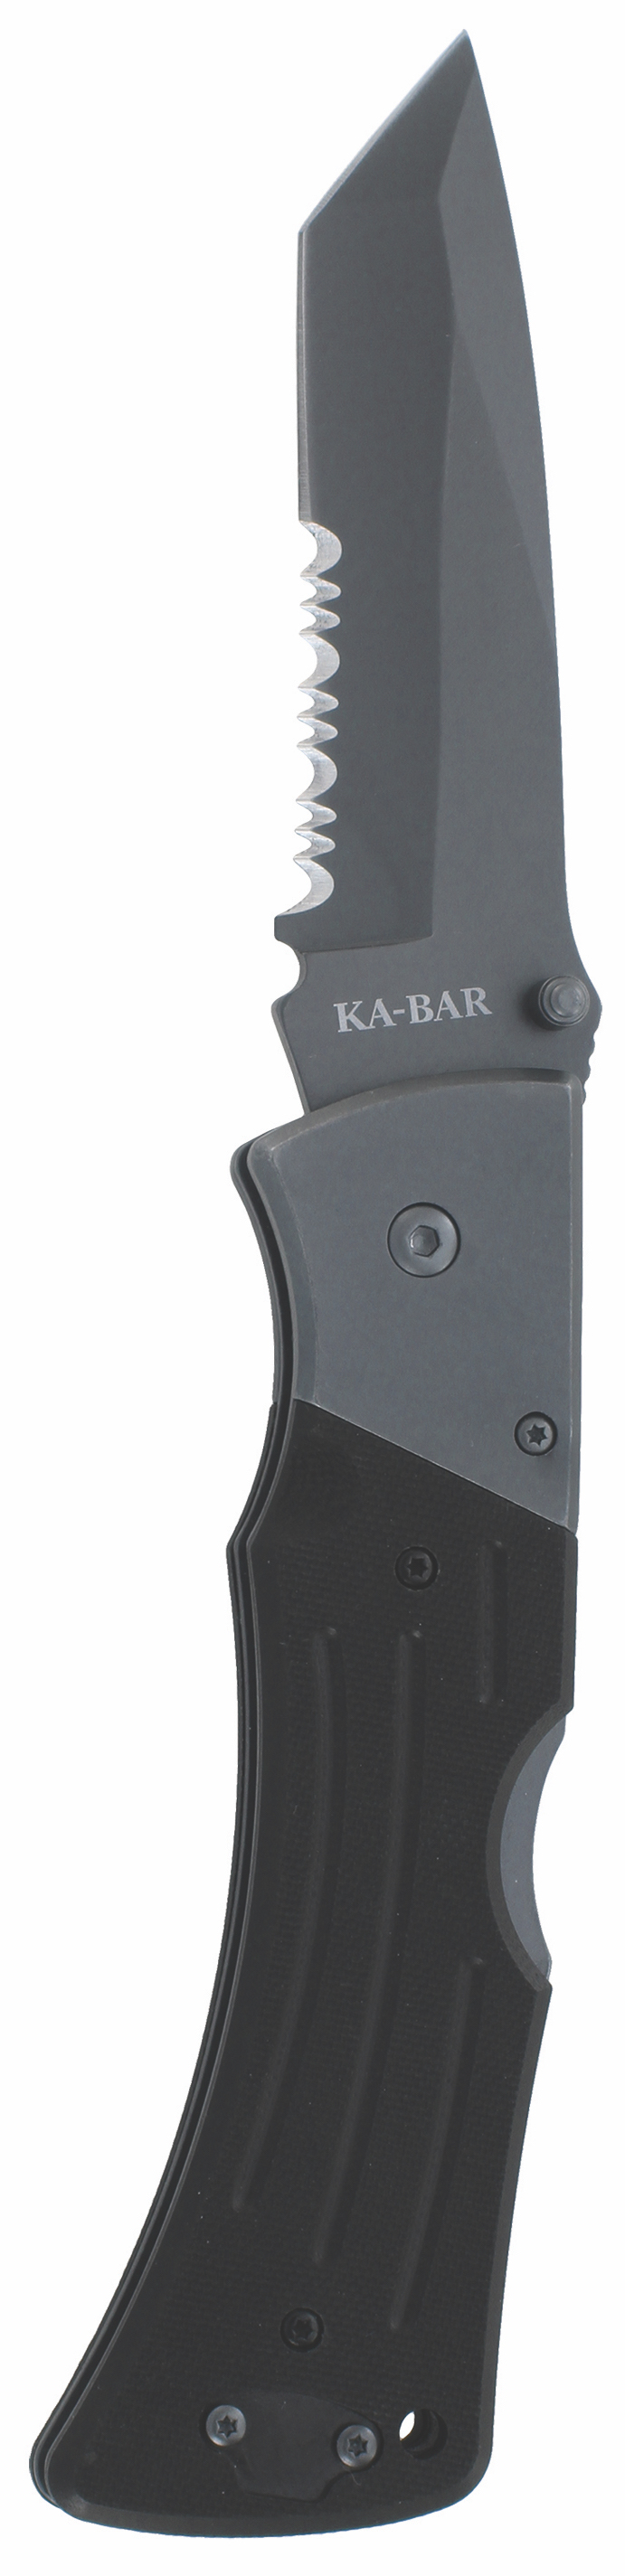 3065 - KA-BAR G10 MULE TANTO FOLDER II-BLACK, SERR EDGE